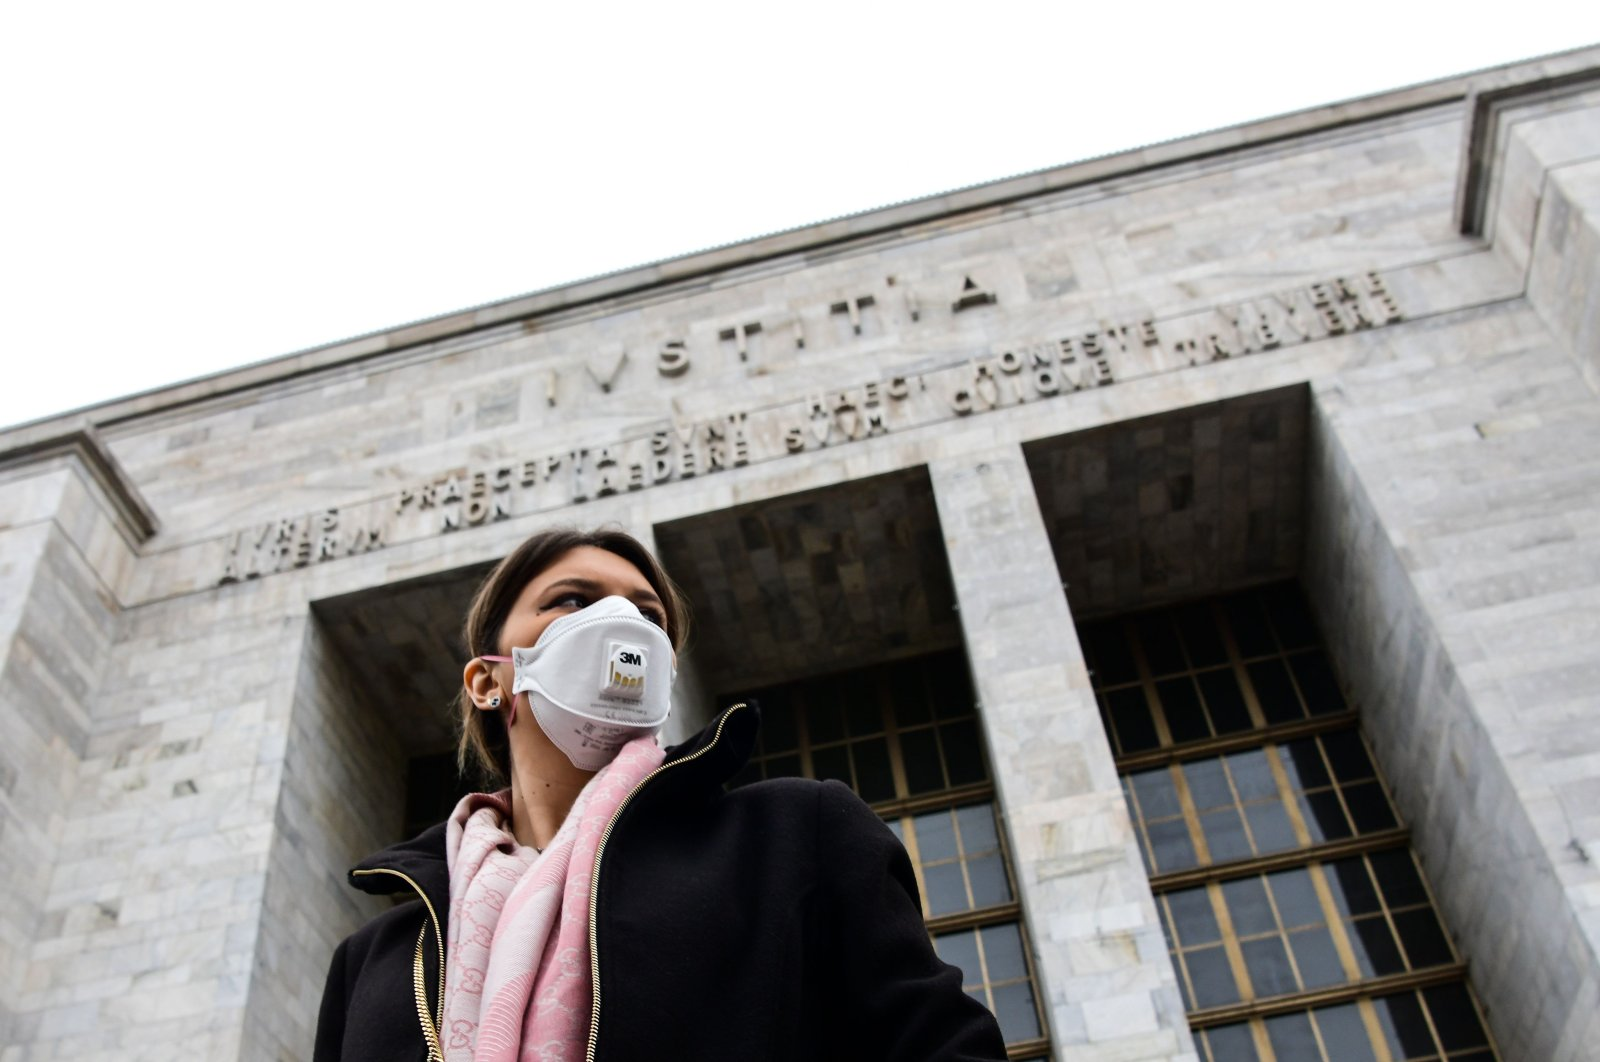 A woman wearing a respiratory mask exits from the Palace of Justice in Milan, on March 5, 2020. (AFP Photo)